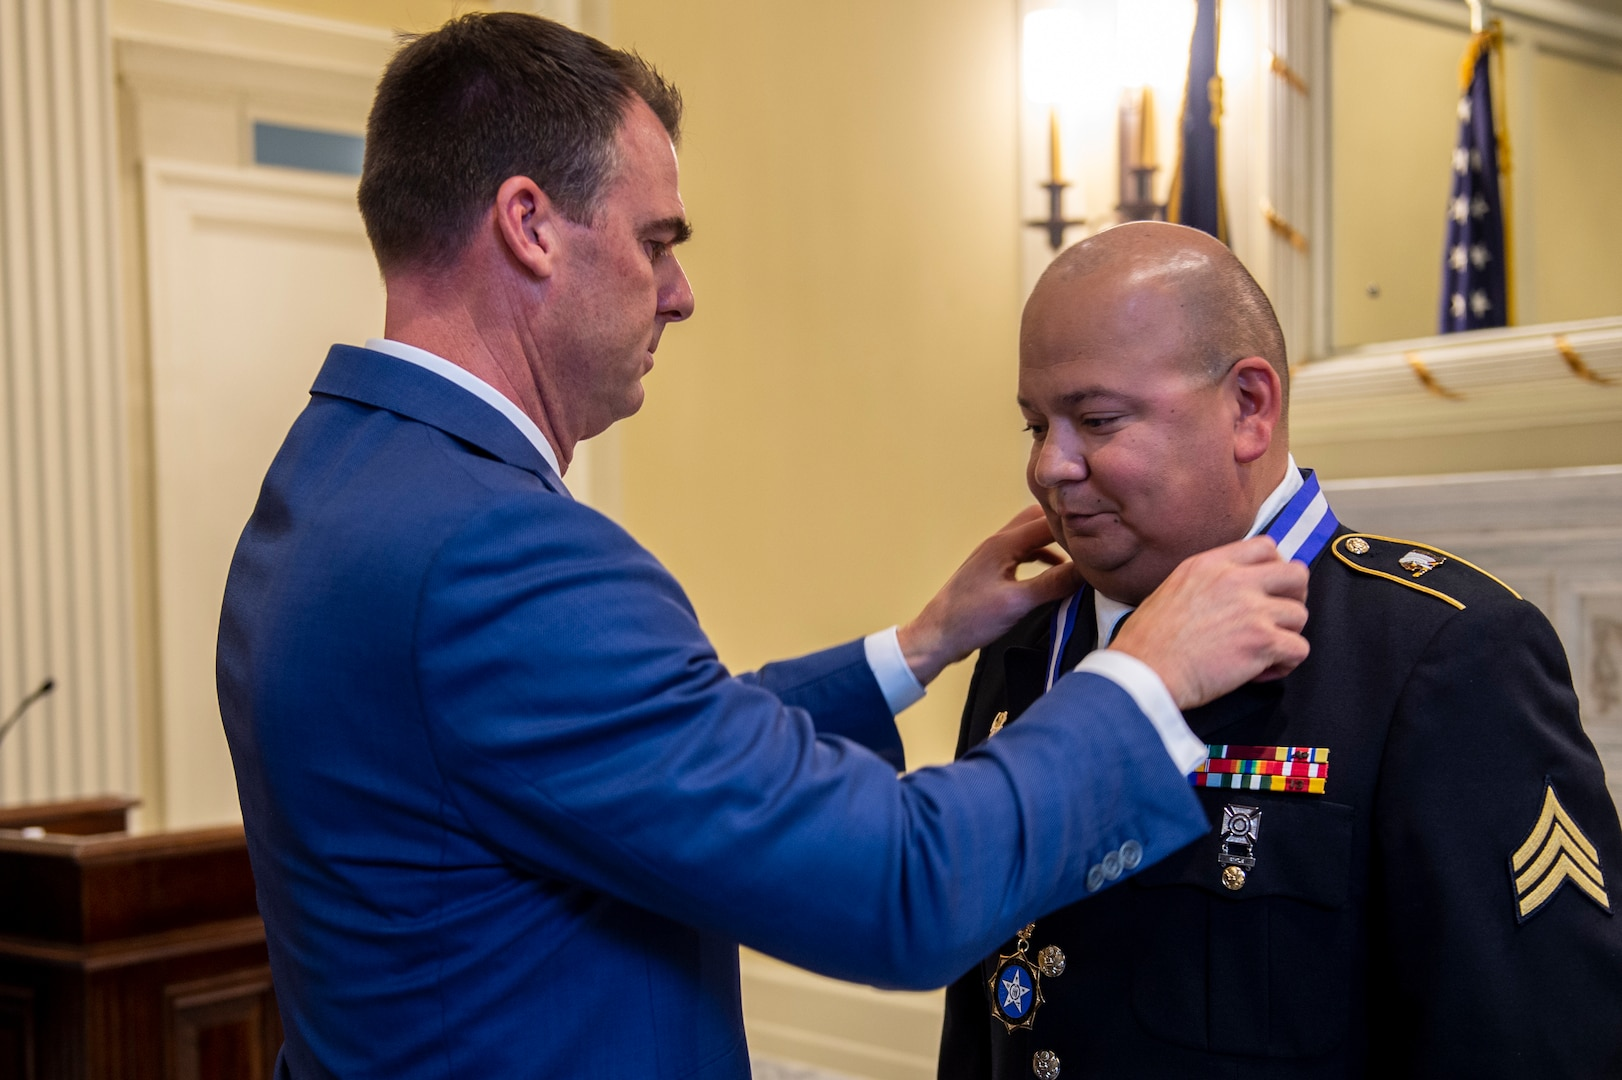 Governor Kevin Stitt presents Oklahoma Army National Guard Sgt. Pedro Gonzales III with the inaugural Oklahoma Medal of Valor during a ceremony at the Oklahoma State Capitol in Oklahoma City, May 18, 2021. The Oklahoma Medal of Valor is the state of Oklahoma's highest award of honor presented to a member of a public safety agency or member of the public. (Oklahoma National Guard photo by Anthony Jones)